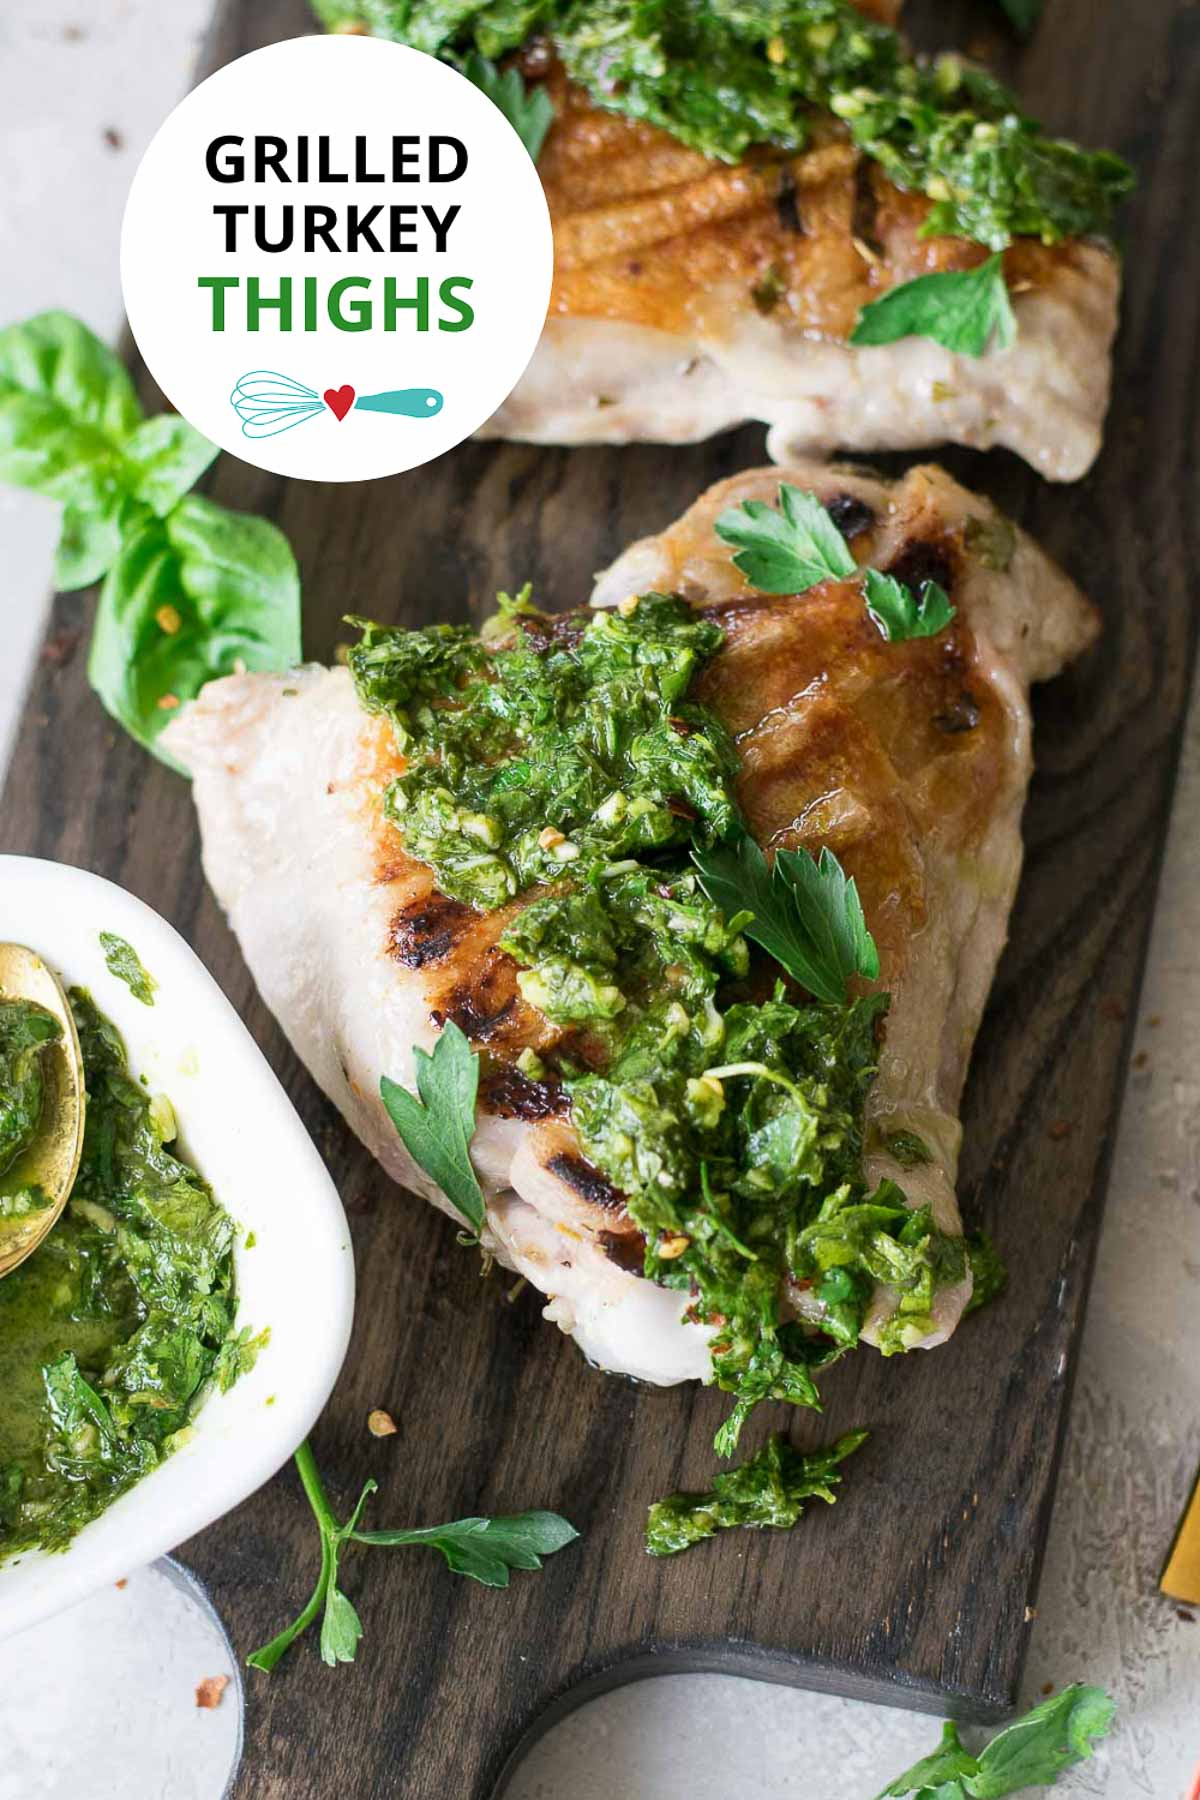 Grilled Turkey Thighs with Chimichurri